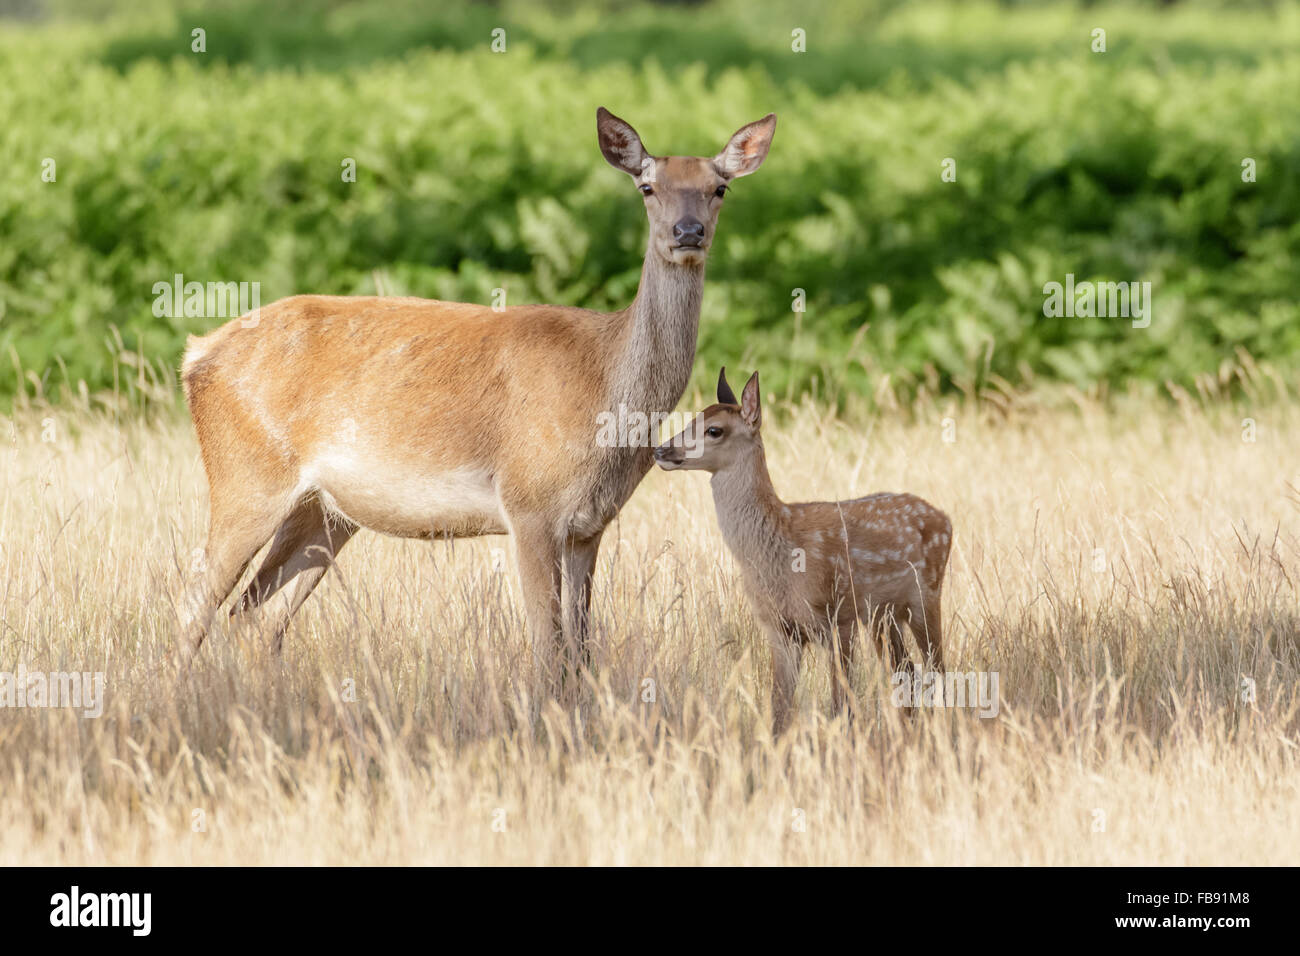 Red Deer (Cervus elaphus) hind mum mother and young baby calf in long grass. - Stock Image